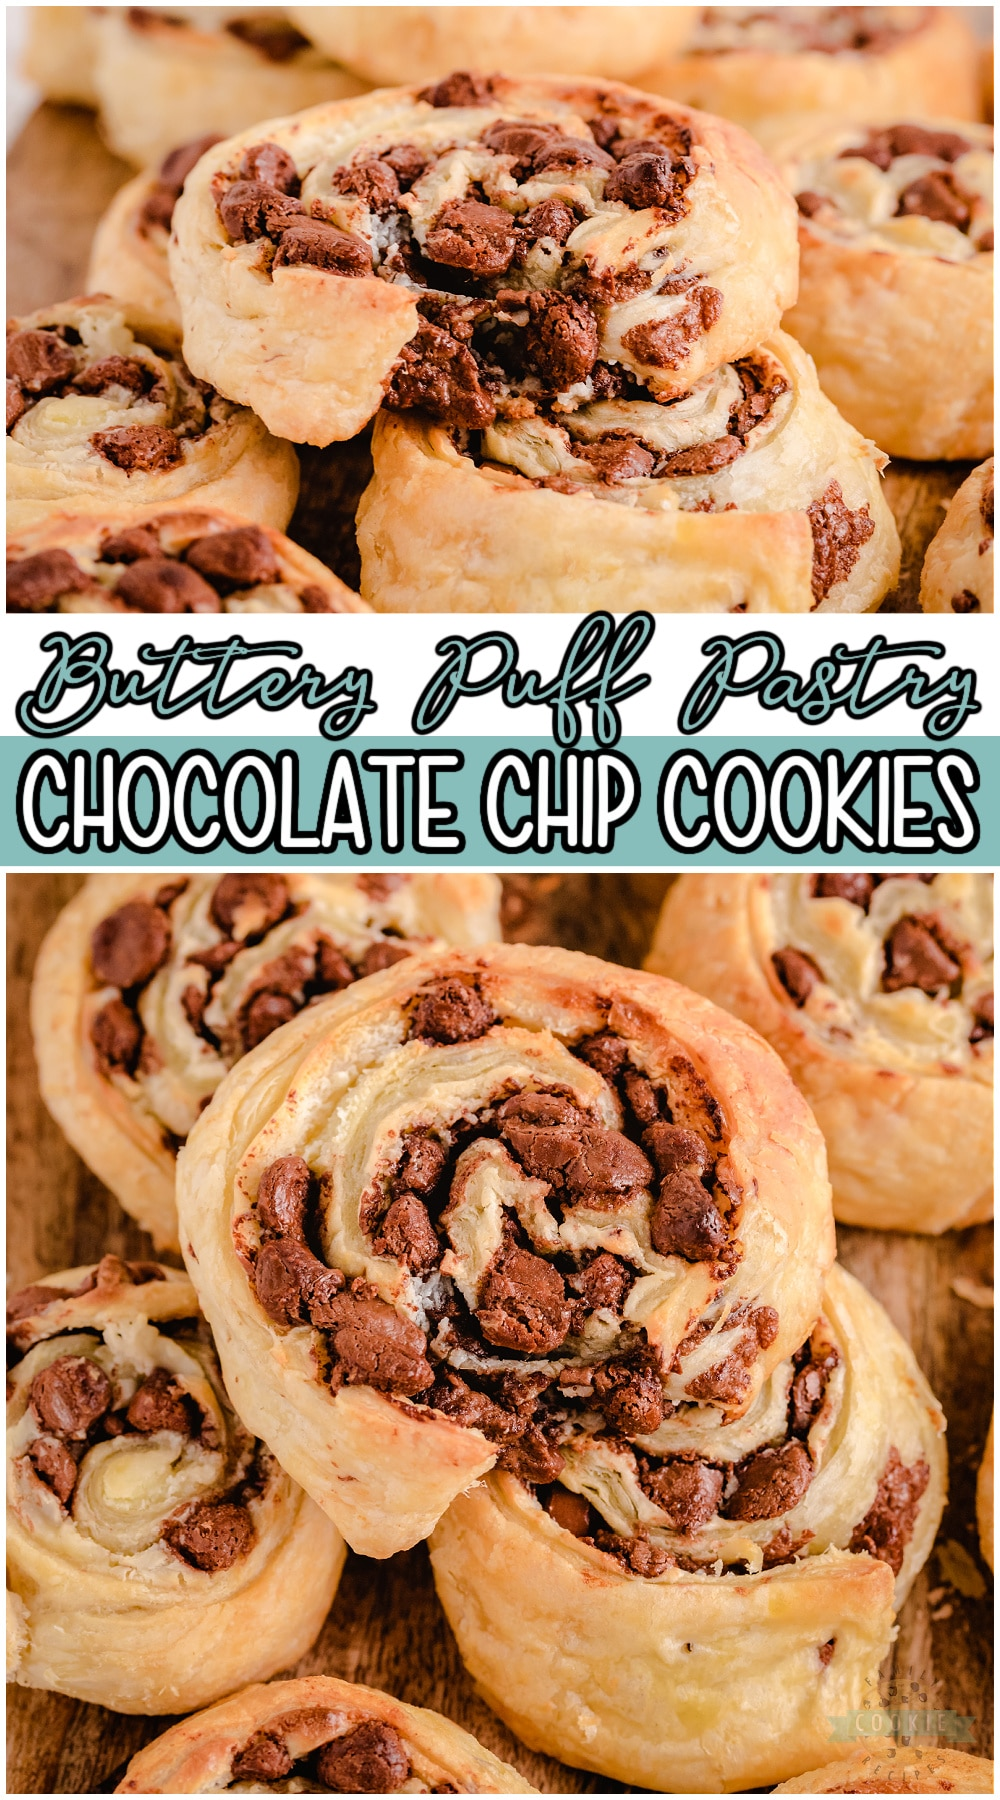 """Chocolate Chip Puff Pastry Cookies are unique cookies made with just 4 simple ingredients! Buttery Puff Pastry serves as the """"cookie dough"""" for these deliciously flaky cream cheese chocolate chip cookies.#cookies #puffpastry #chocolate #chocolatechip #baking #easyrecipe from FAMILY COOKIE RECIPES via @buttergirls"""